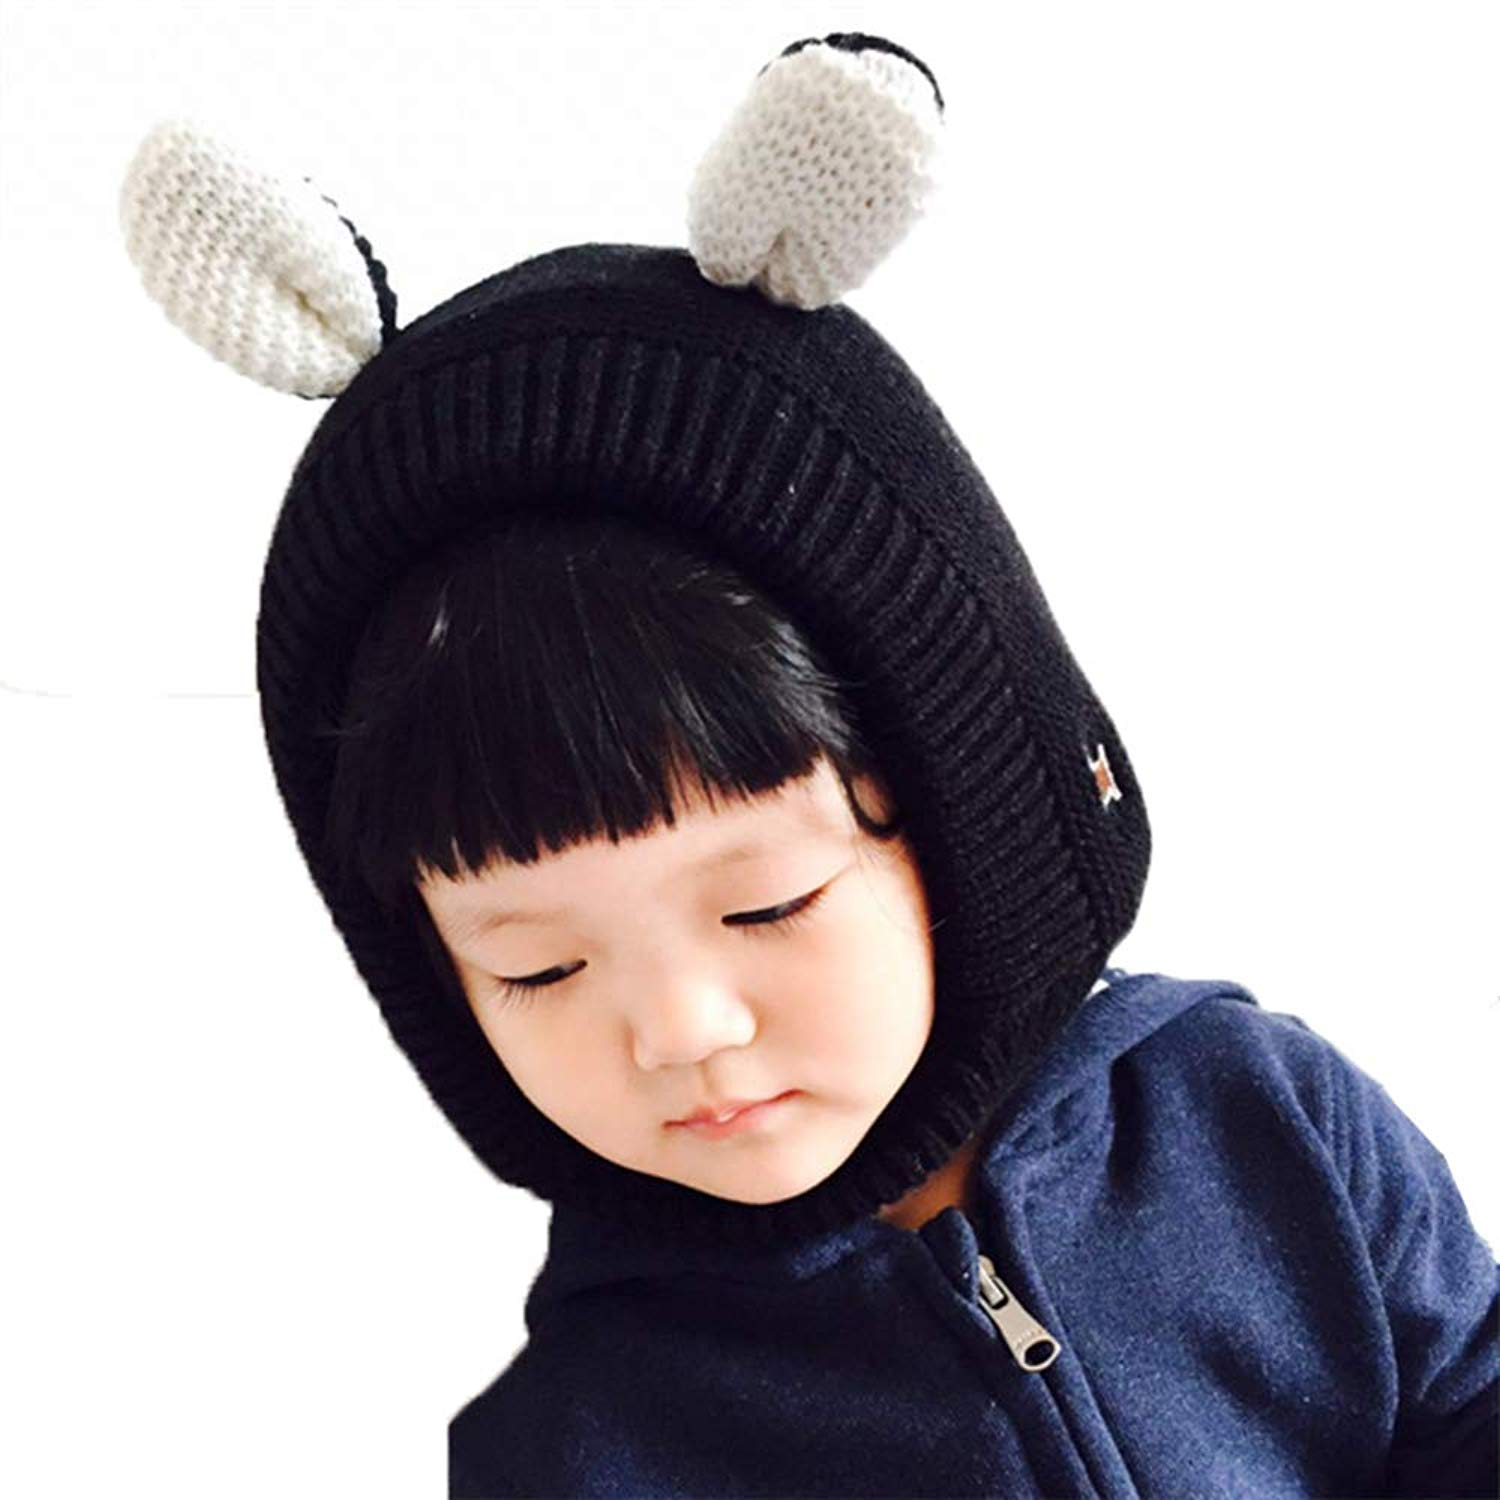 dc57e021 Get Quotations · Yehopere Kids Baby Toddler Cable Knit Hat Children¡¯s  Winter Hat Ears Beanie Caps